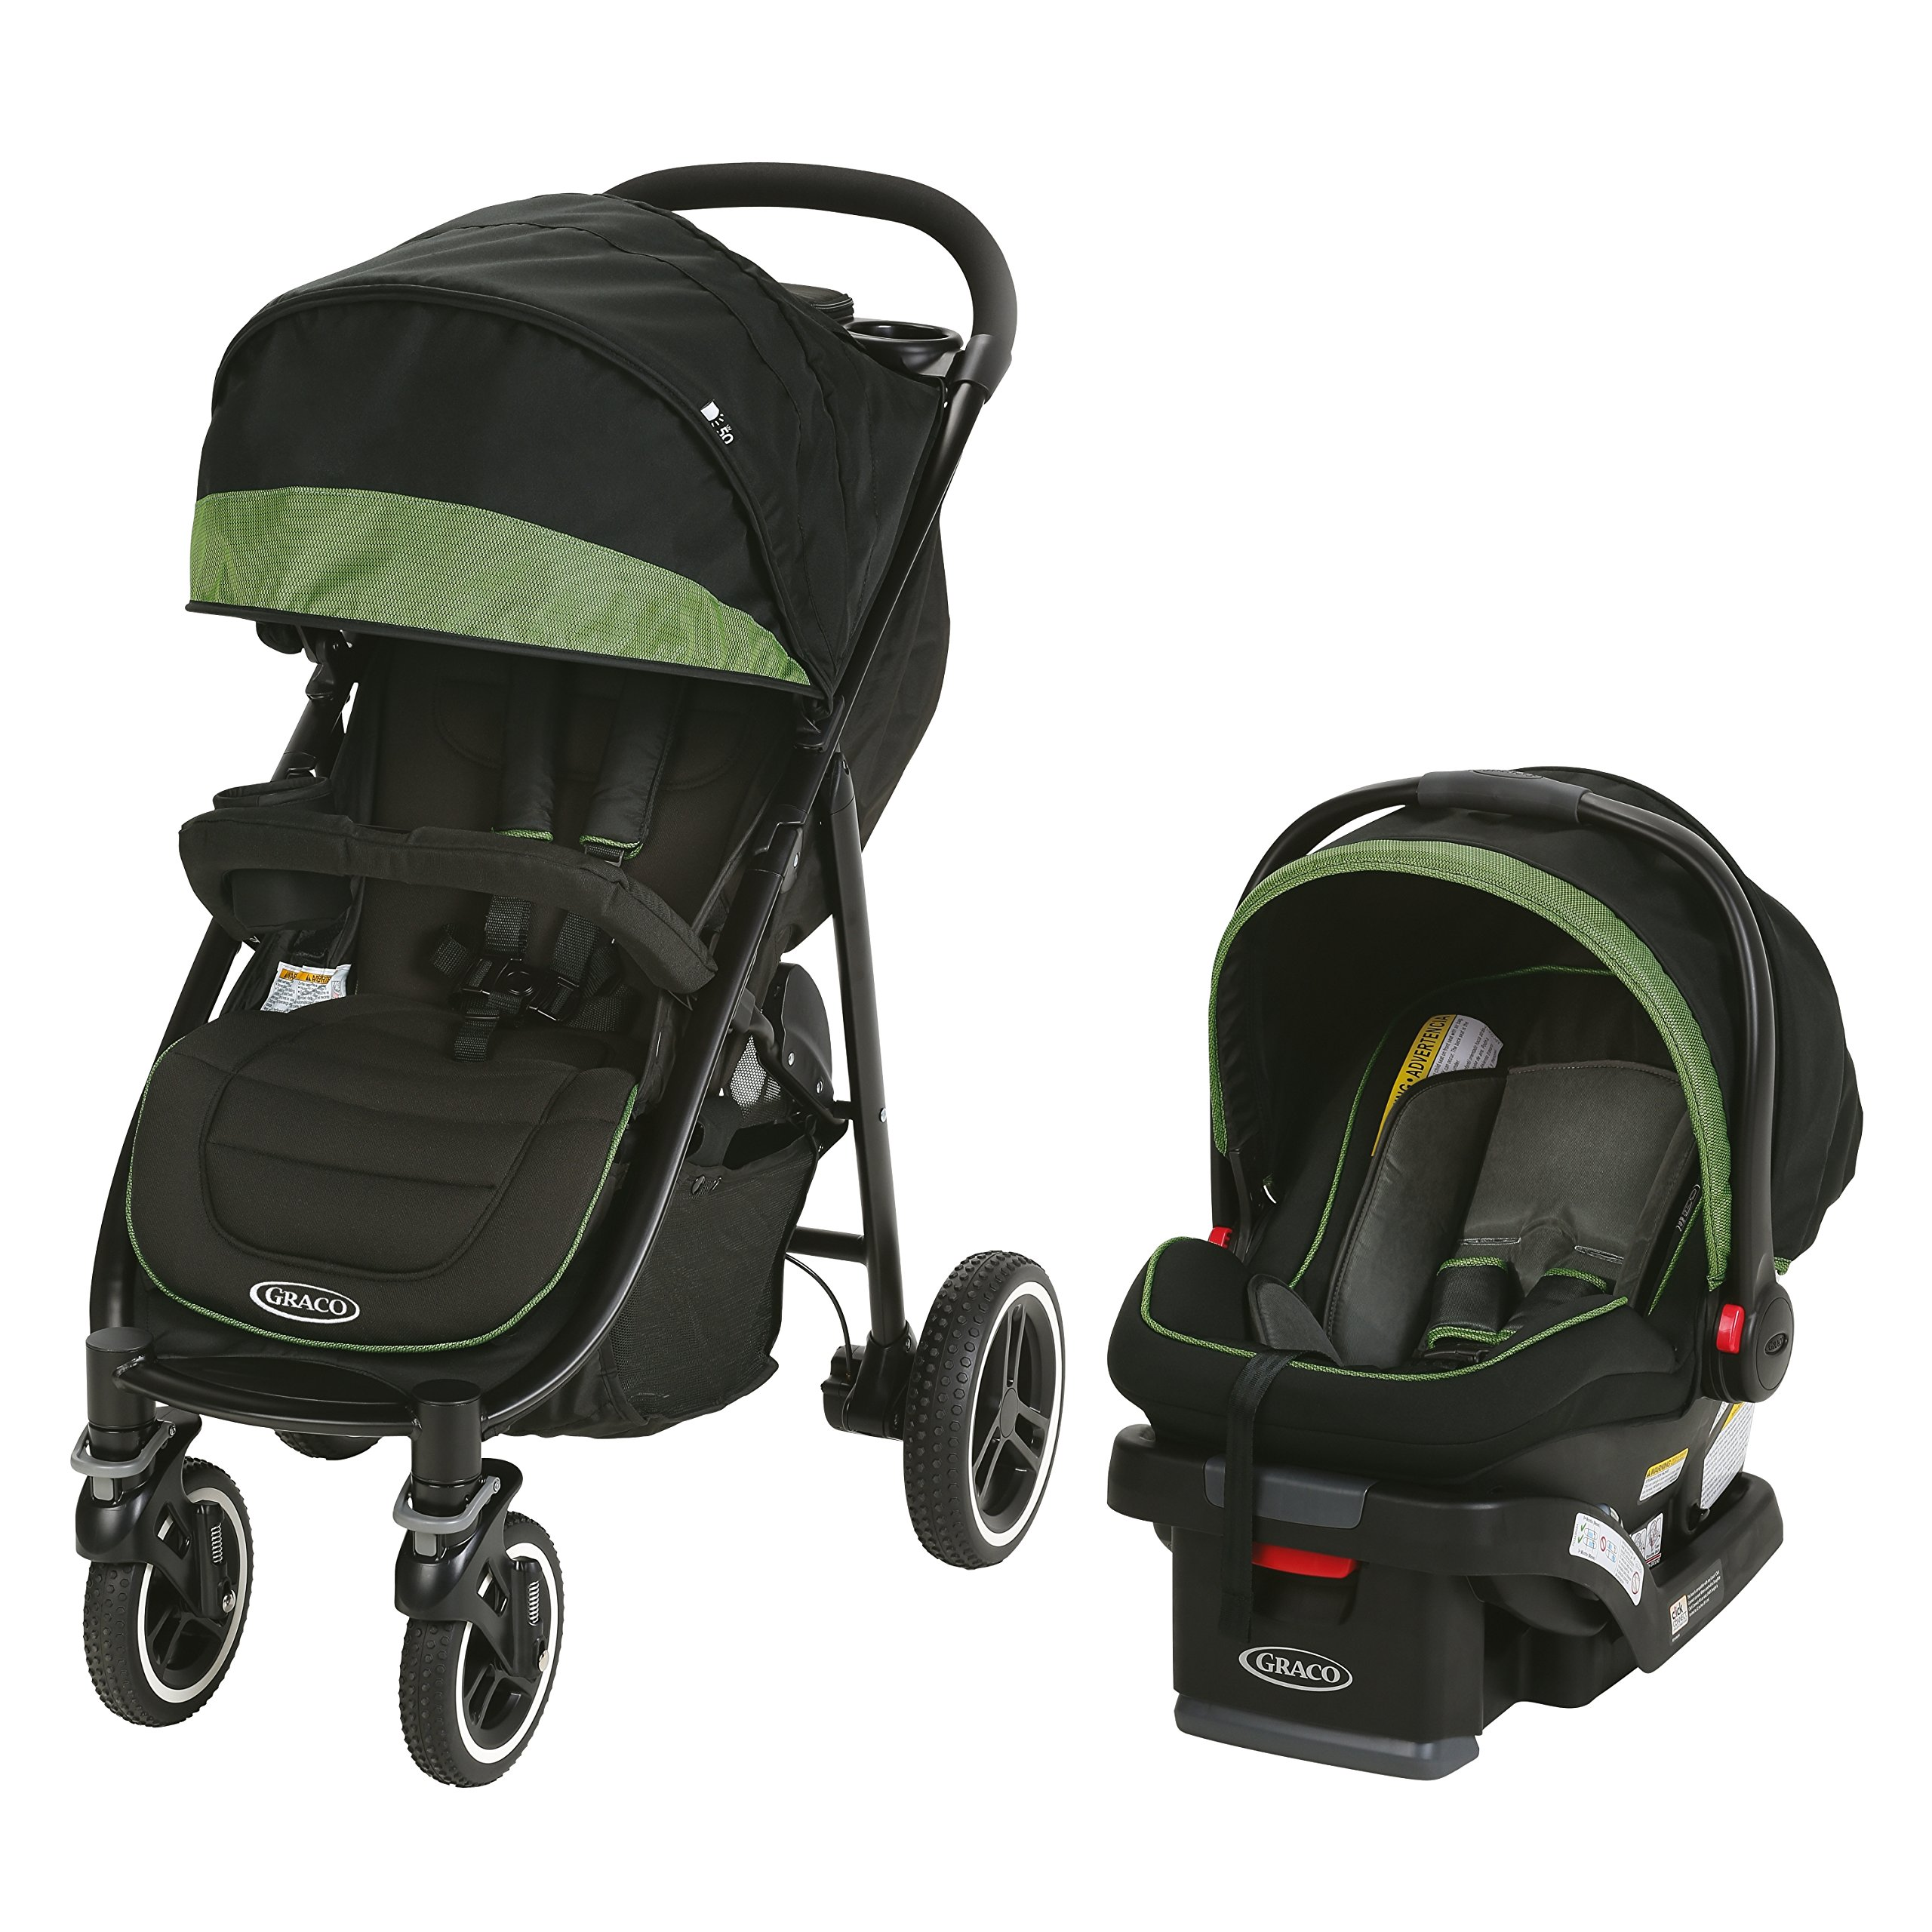 Graco Aire4 XT Travel System, Emory by Graco